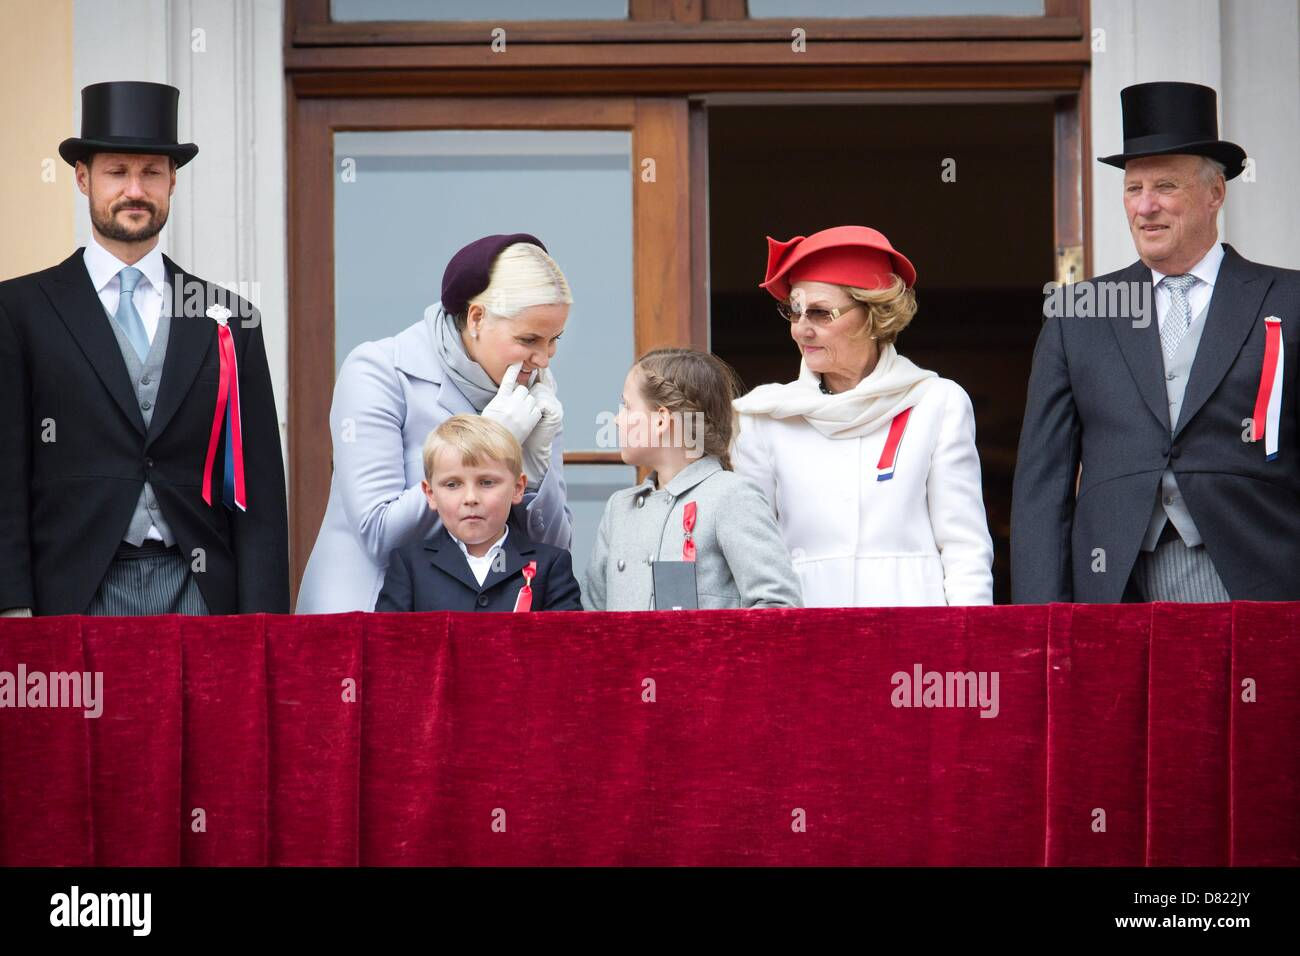 7514e202 Crown Prince Haakon, Crown Princess Mette-Marit, their children Prince  Sverre Magnus and Princess Ingrid Alexandra, Queen Sonja and King Harald  attend the ...